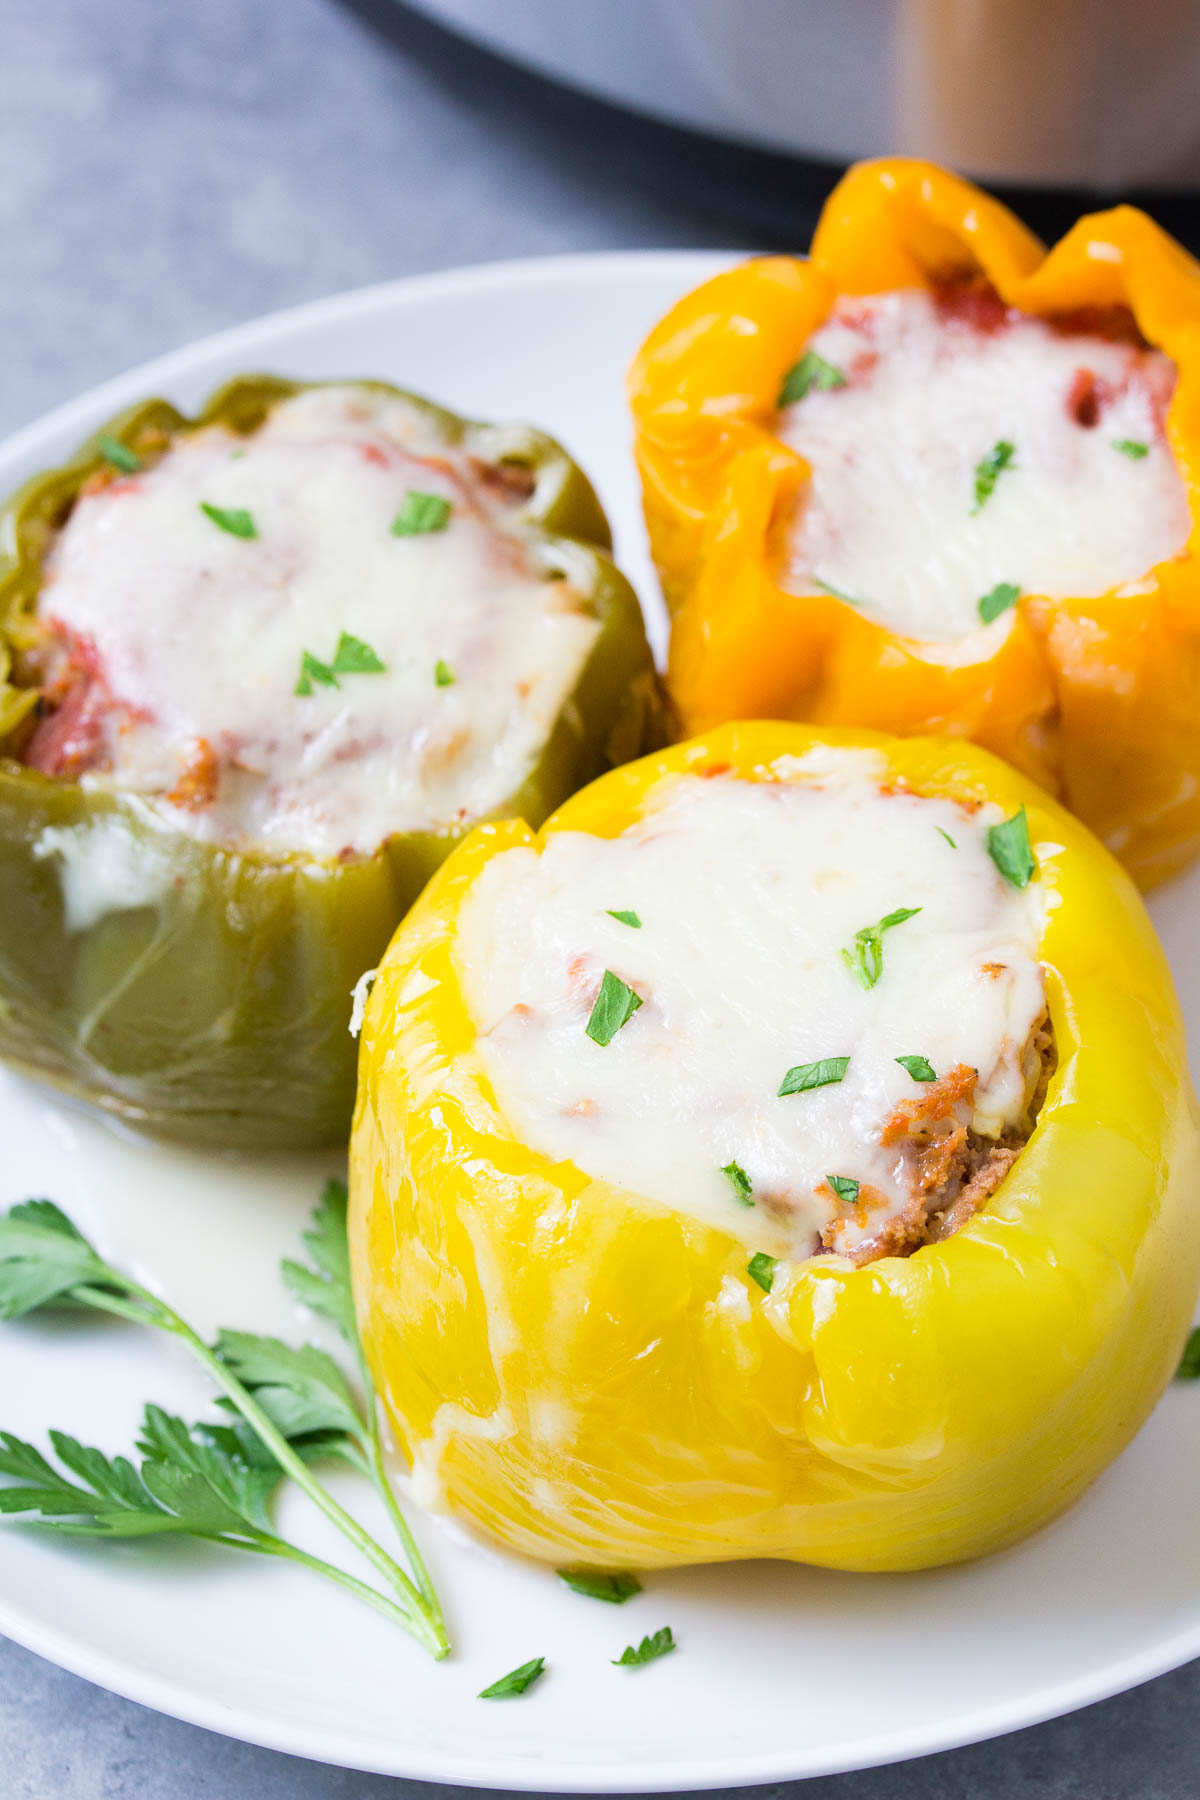 Three stuffed peppers with cheese on a white plate.